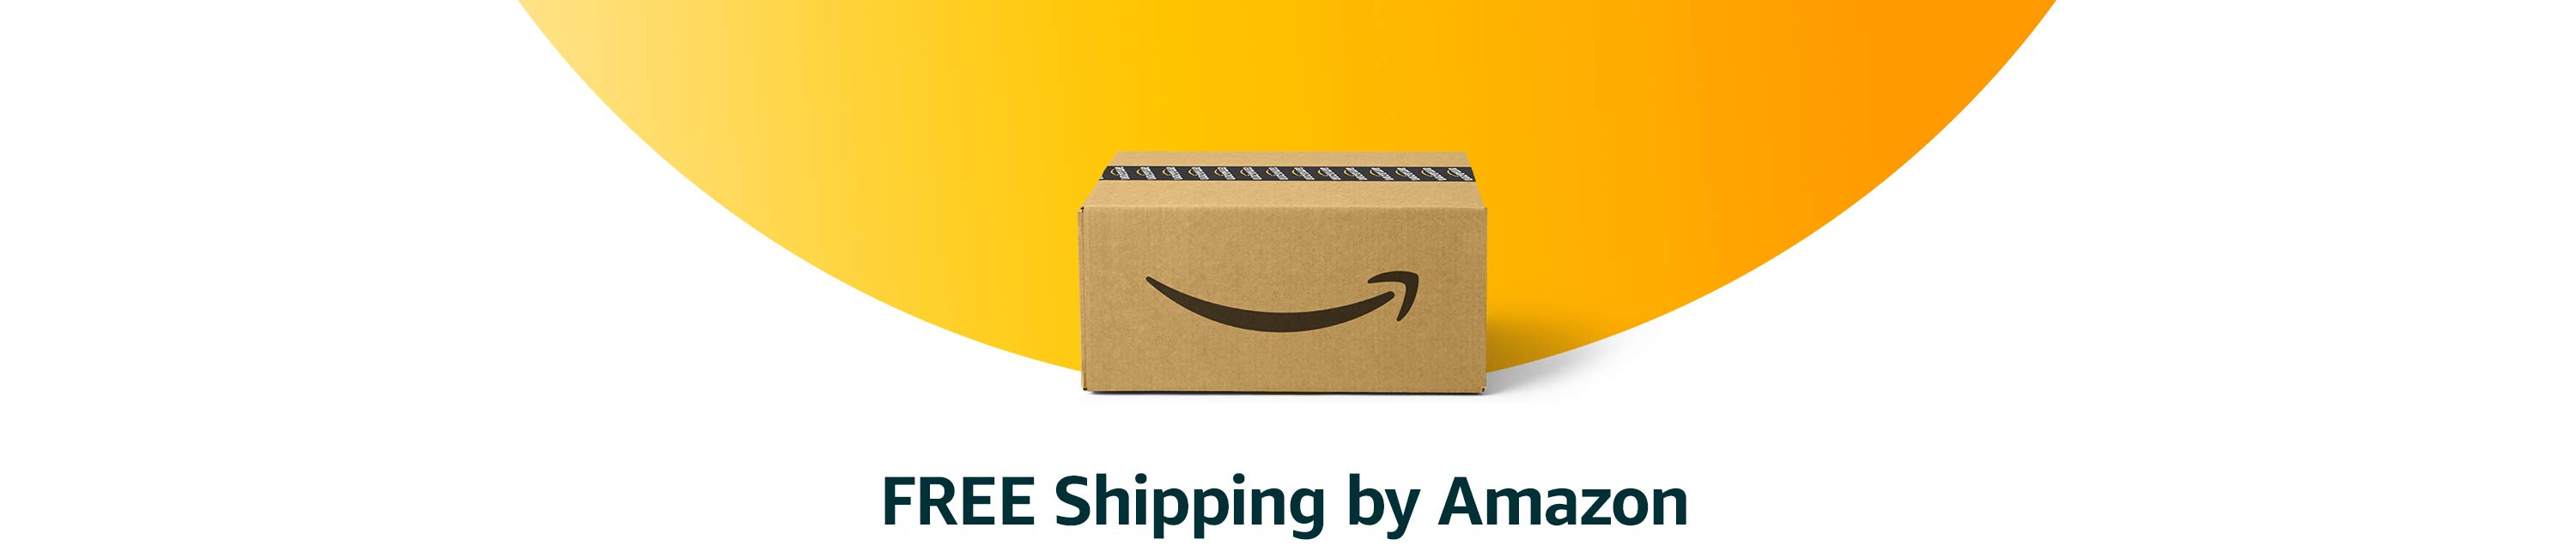 Free Shipping on eligible orders over ₹499